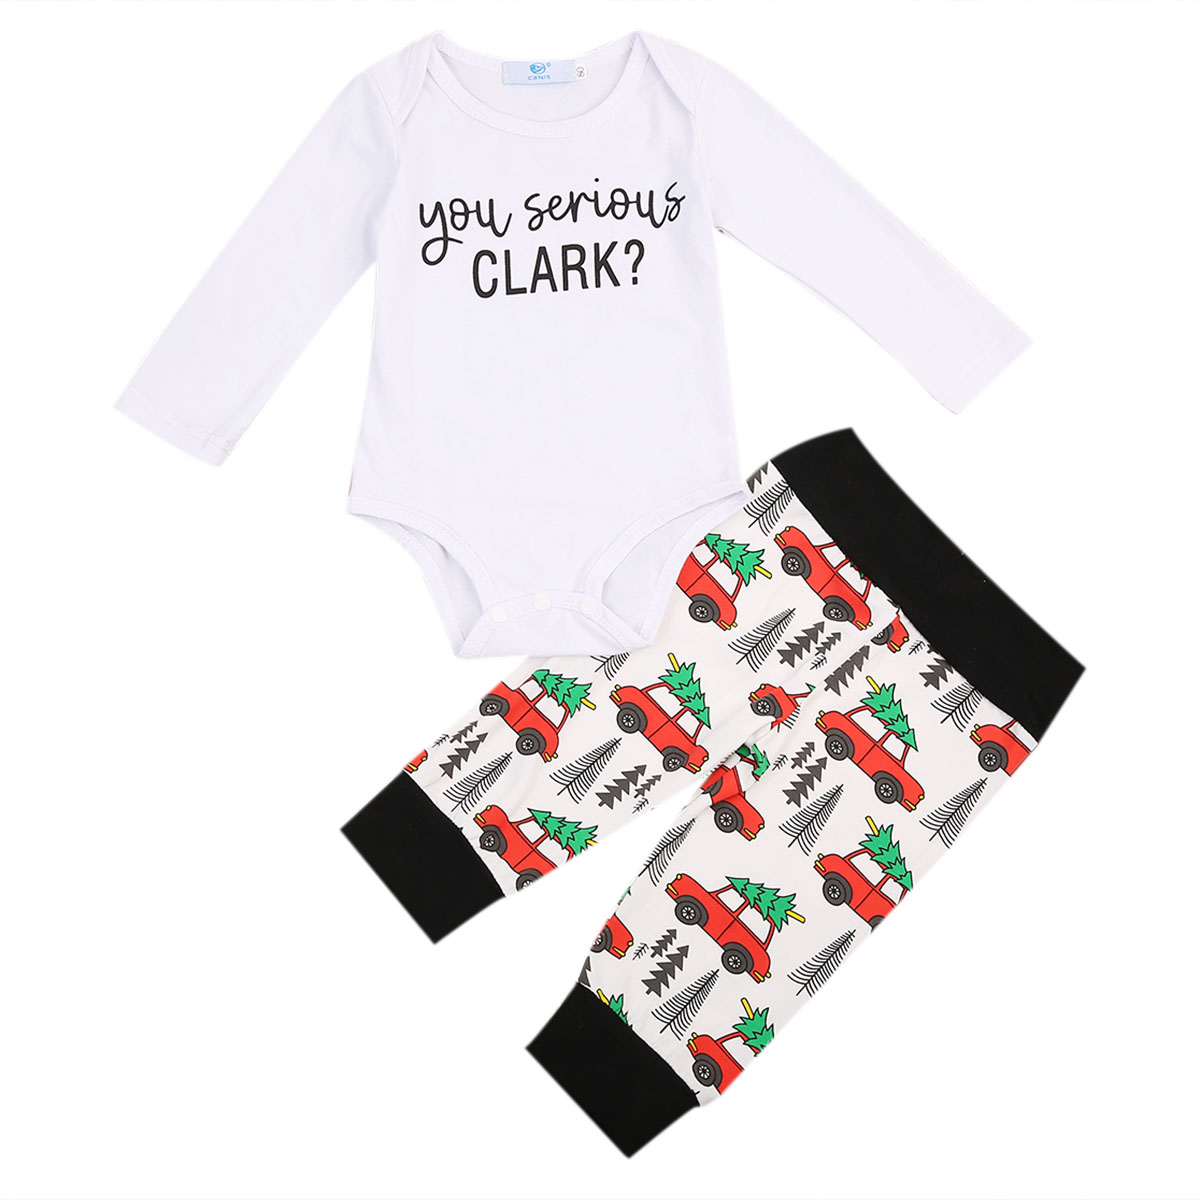 Christmas-Cute-Newborn-Infant-Baby-Boy-Girl-Clothes-Romper-Tops-Bus-Long-Pants-2PCS-Outfit-Set-Baby-Clothing-2